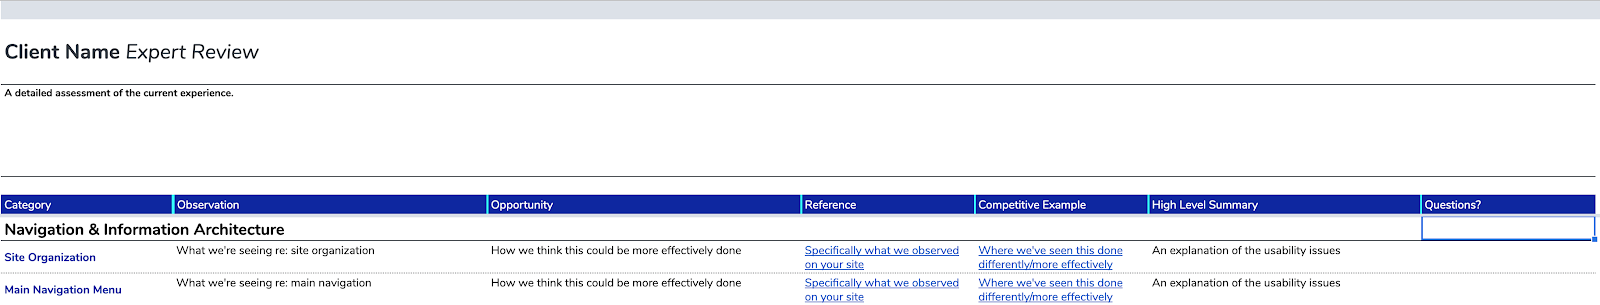 screenshot example of an expert review